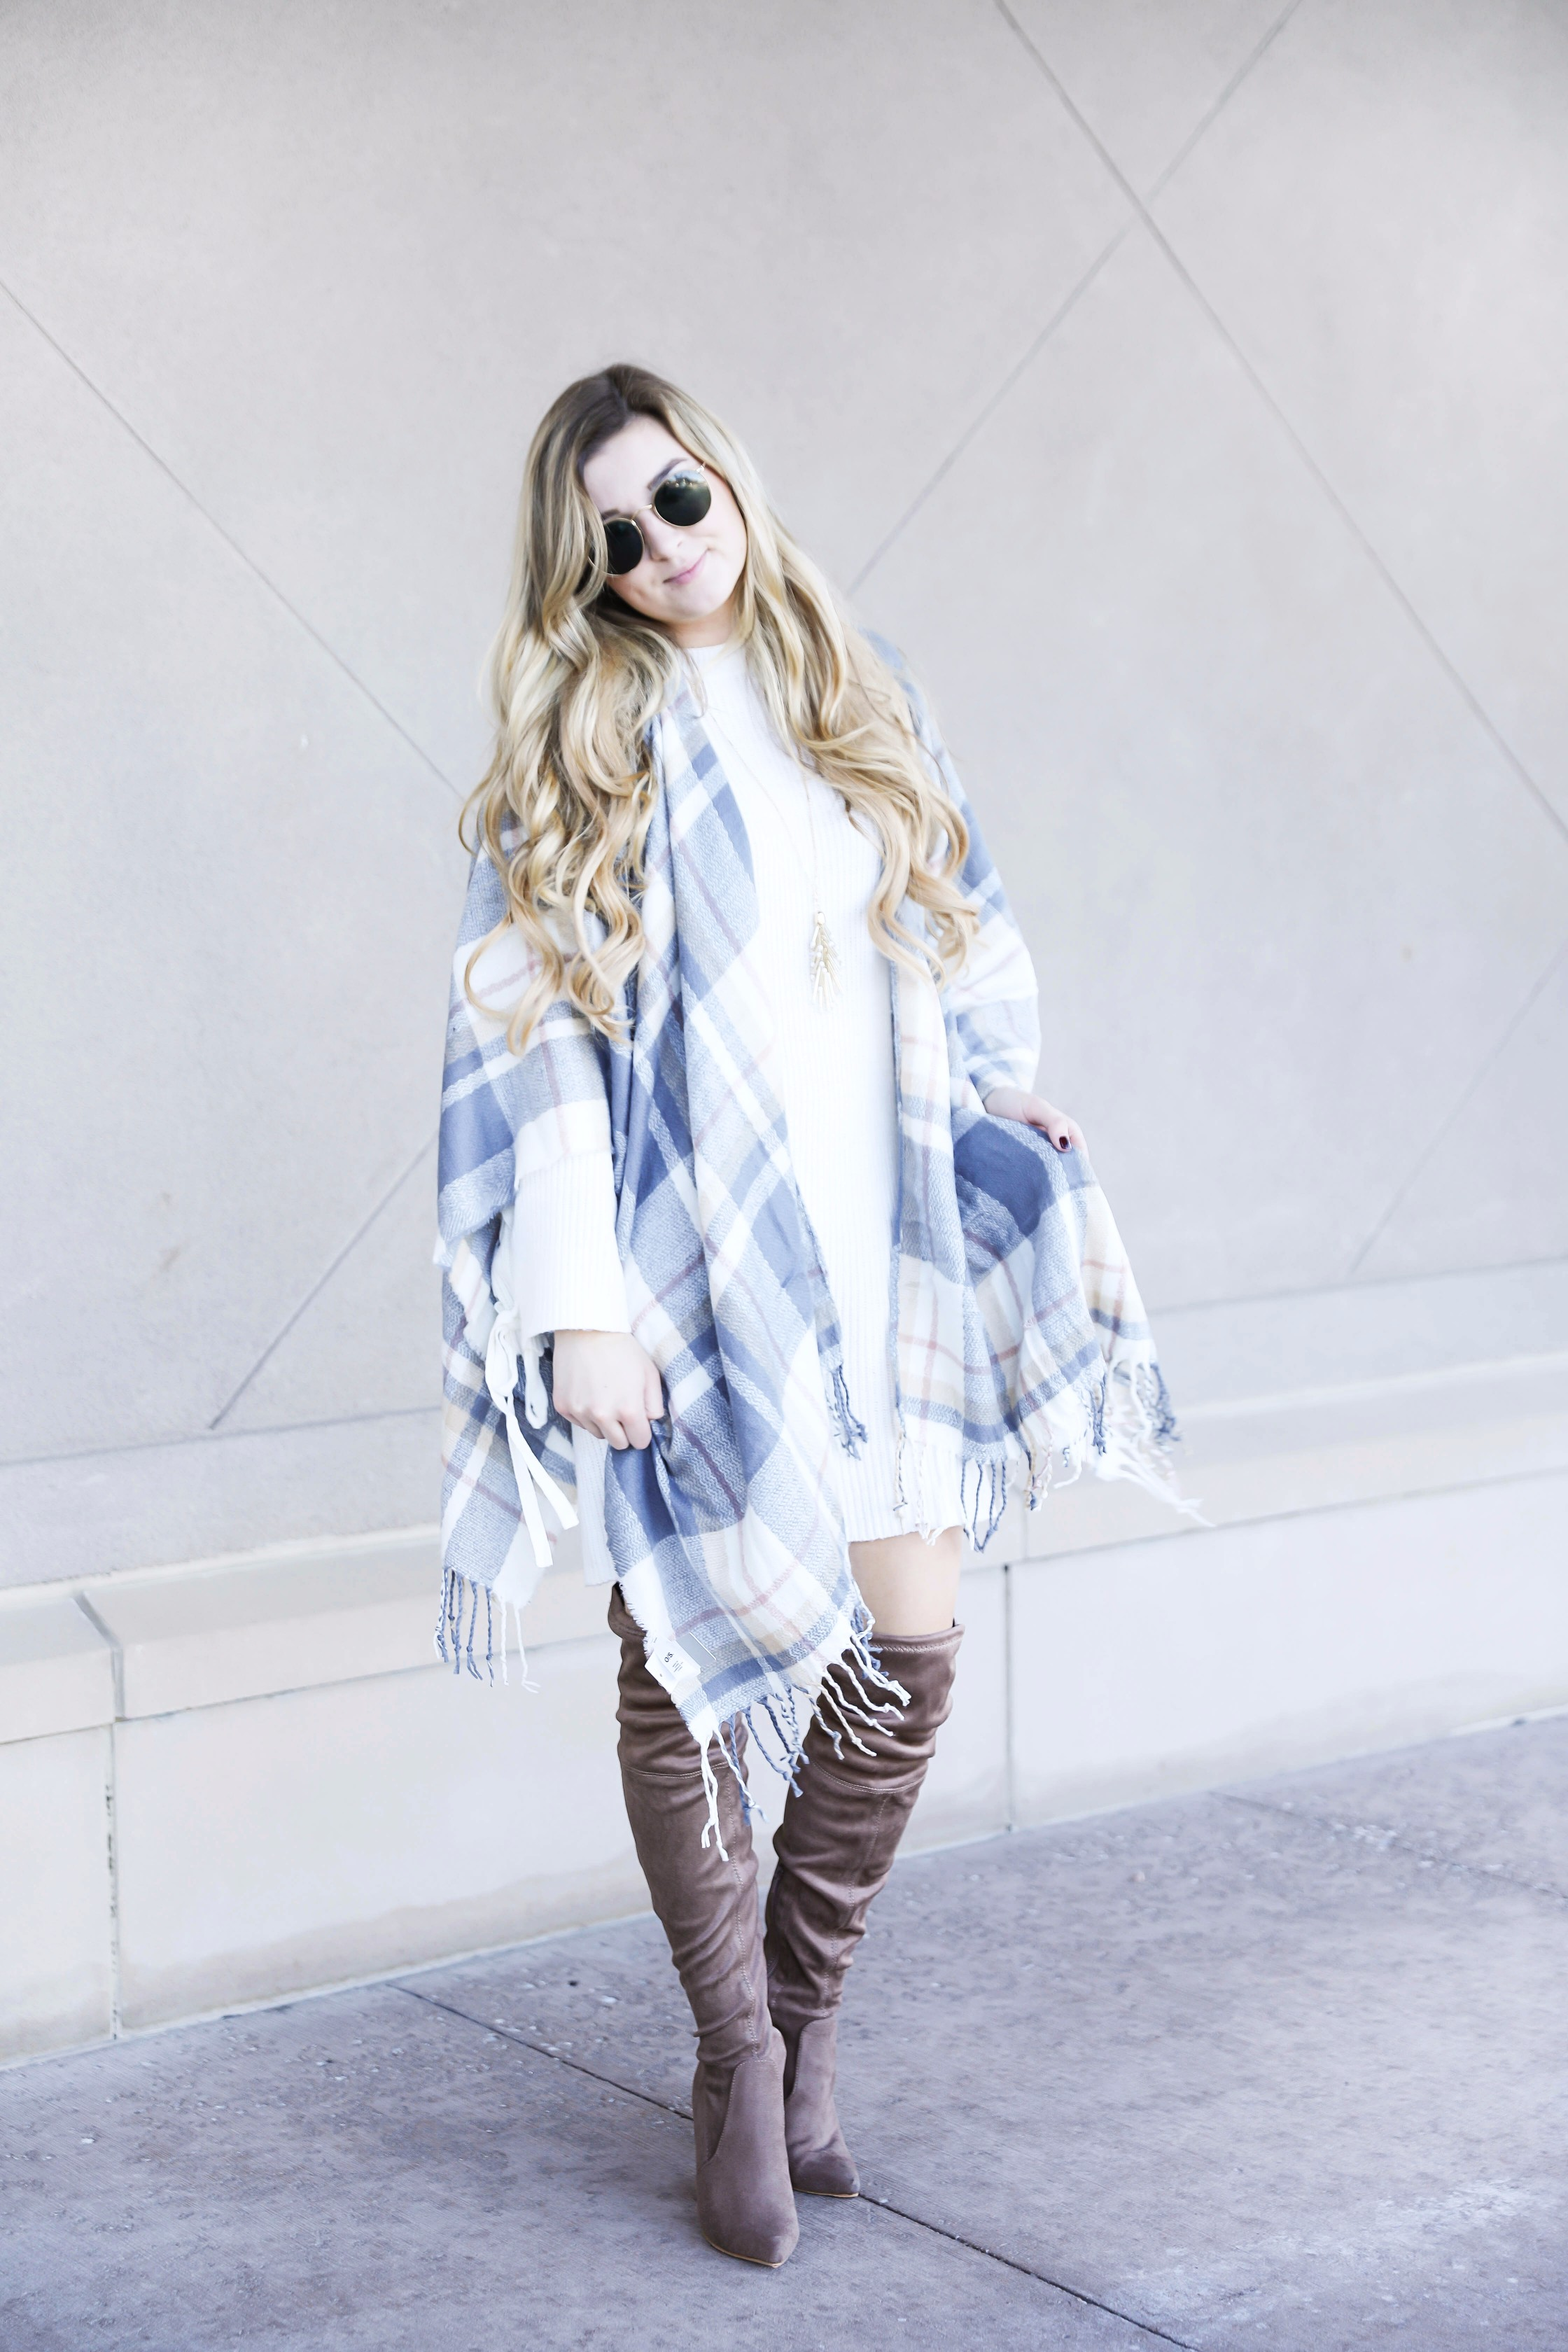 Plaid poncho and cute white sweater dress with tied sleeves! Cutest fall outfit! Check out the details on fashion blog daily dose of charm by lauren lindmark